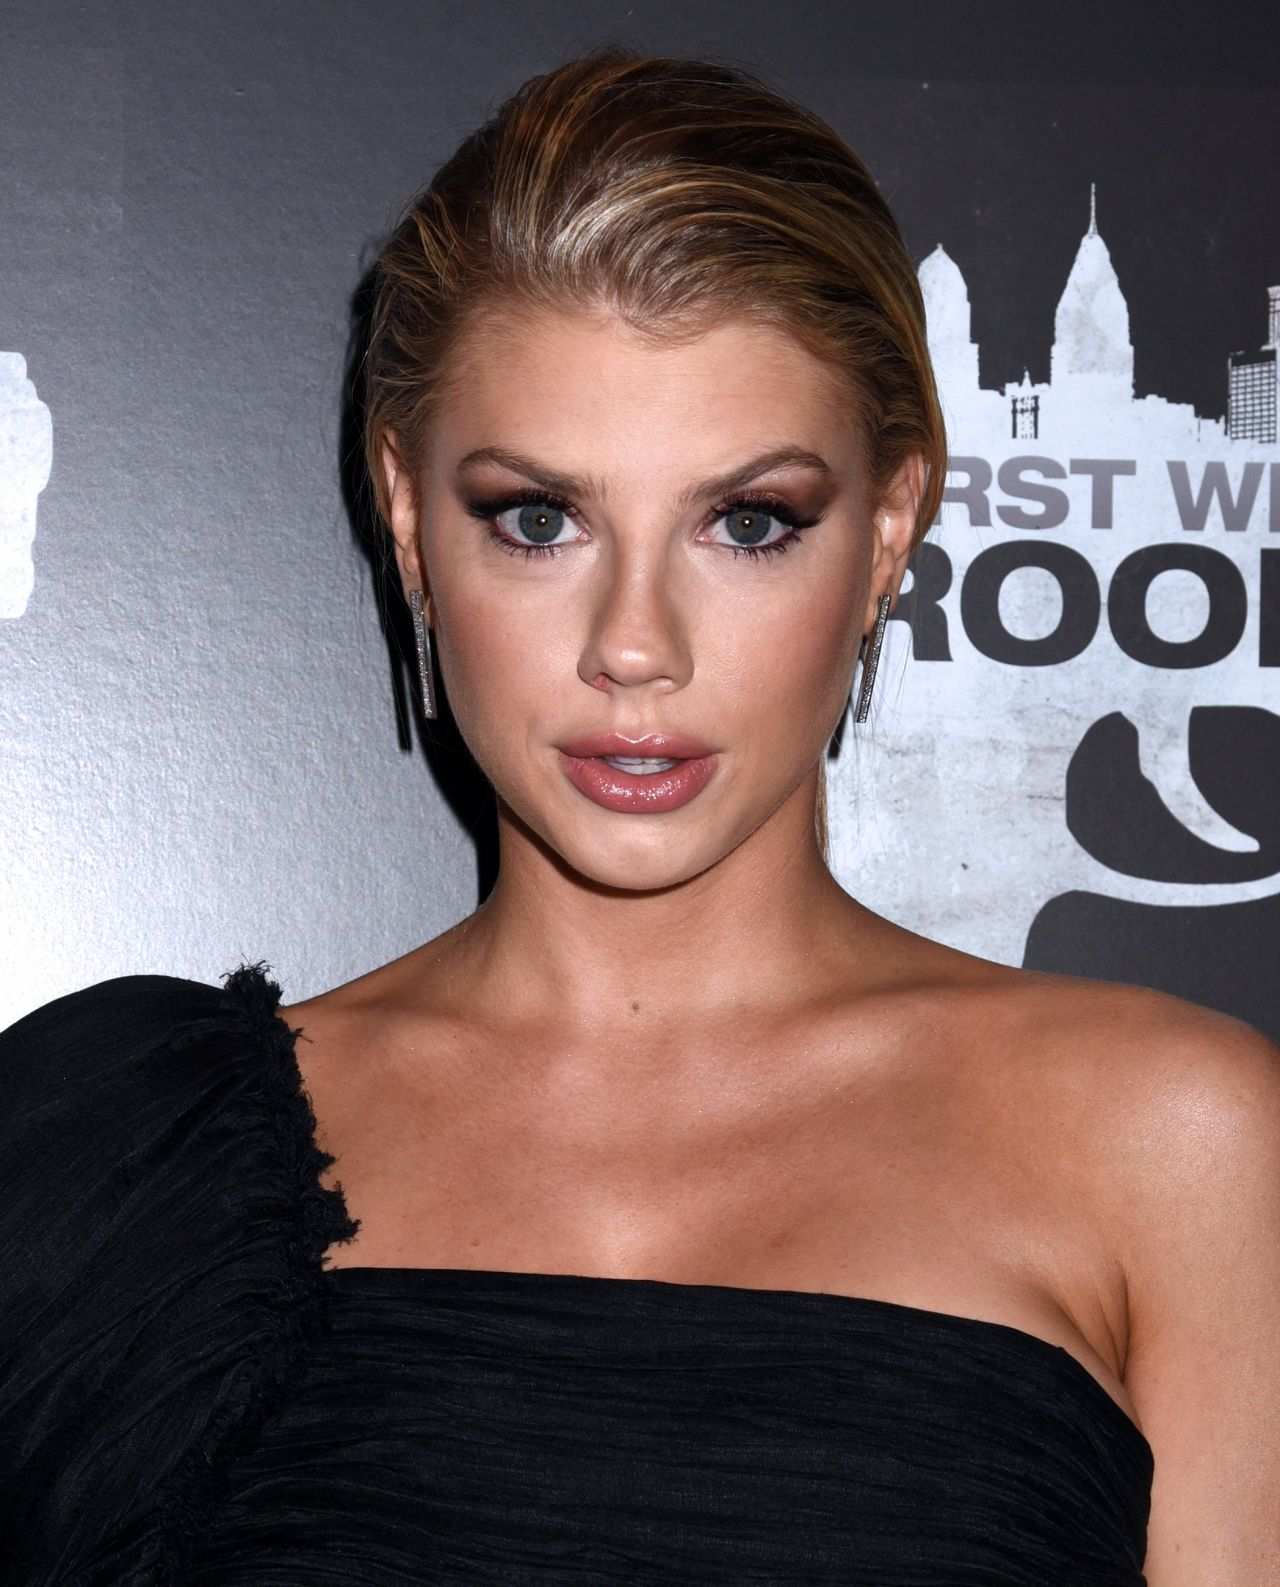 Charlotte Mckinney Quot First We Take Brooklyn Quot Premiere In